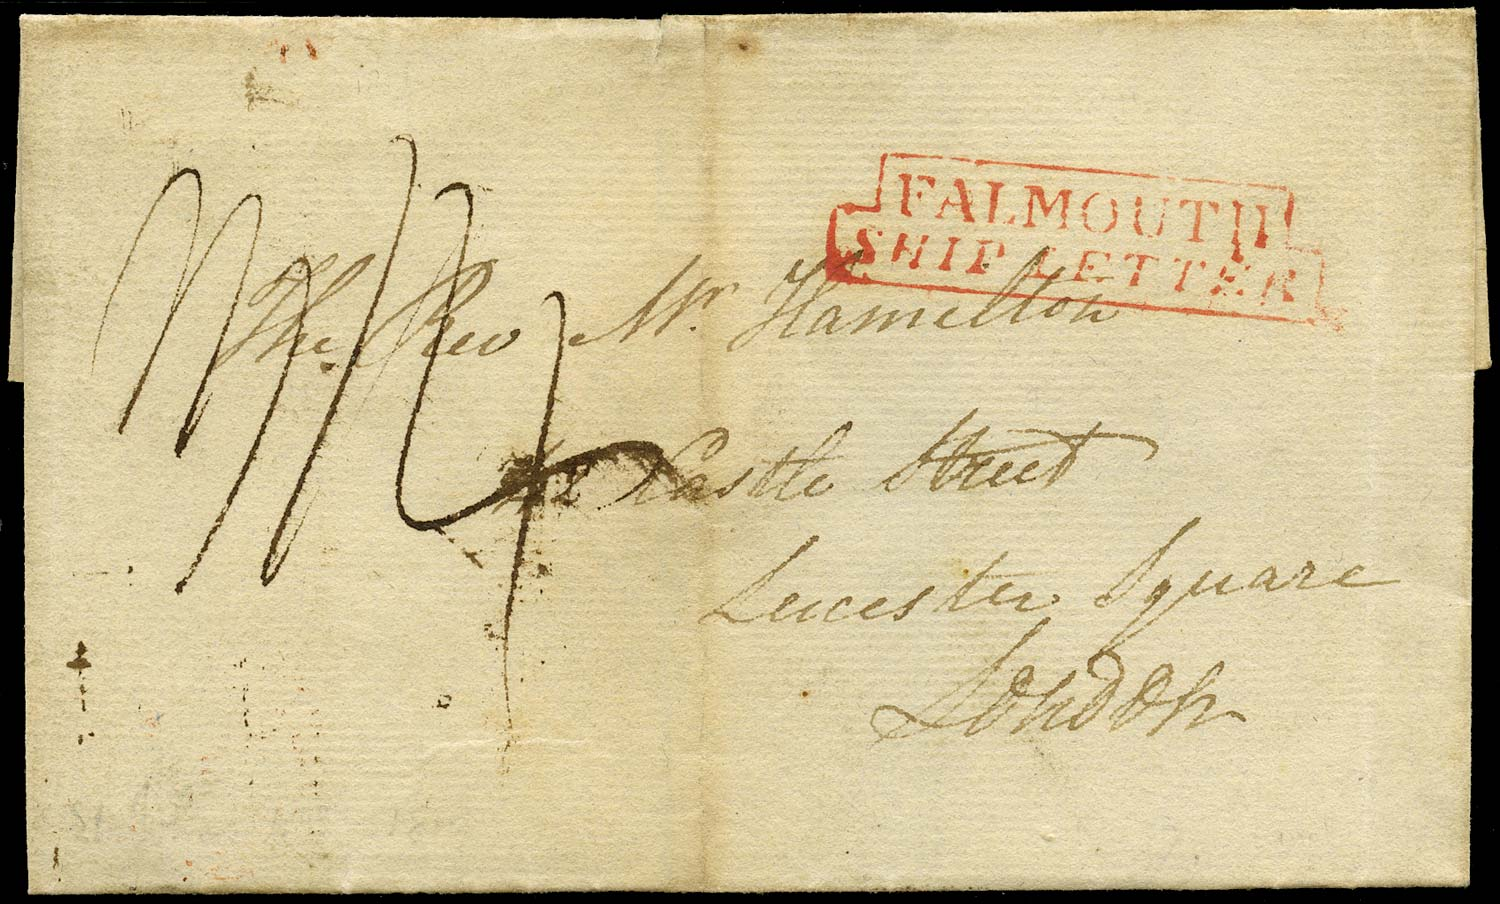 GB 1819 Pre-Stamp - Falmouth Ship Letter. (Robertson type S6)